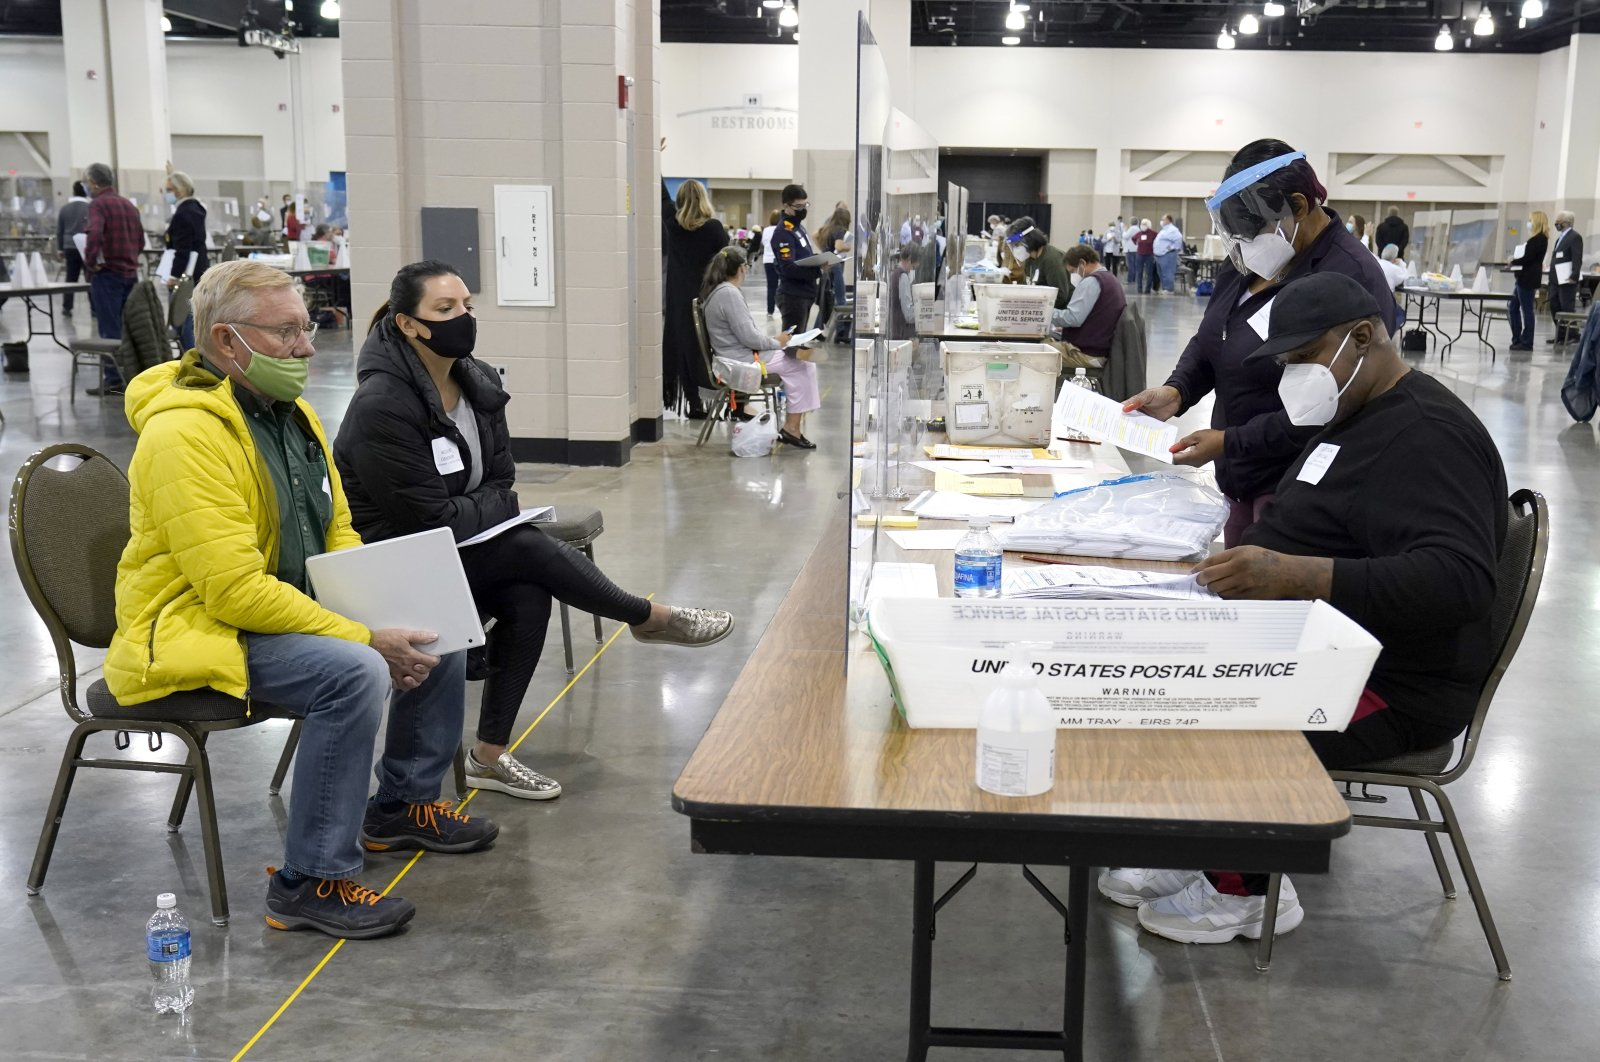 Election workers, right, verify ballots as recount observers, left, watch during a Milwaukee hand recount of presidential votes at the Wisconsin Center in Milwaukee, U.S., Nov. 20, 2020. (AP Photo)